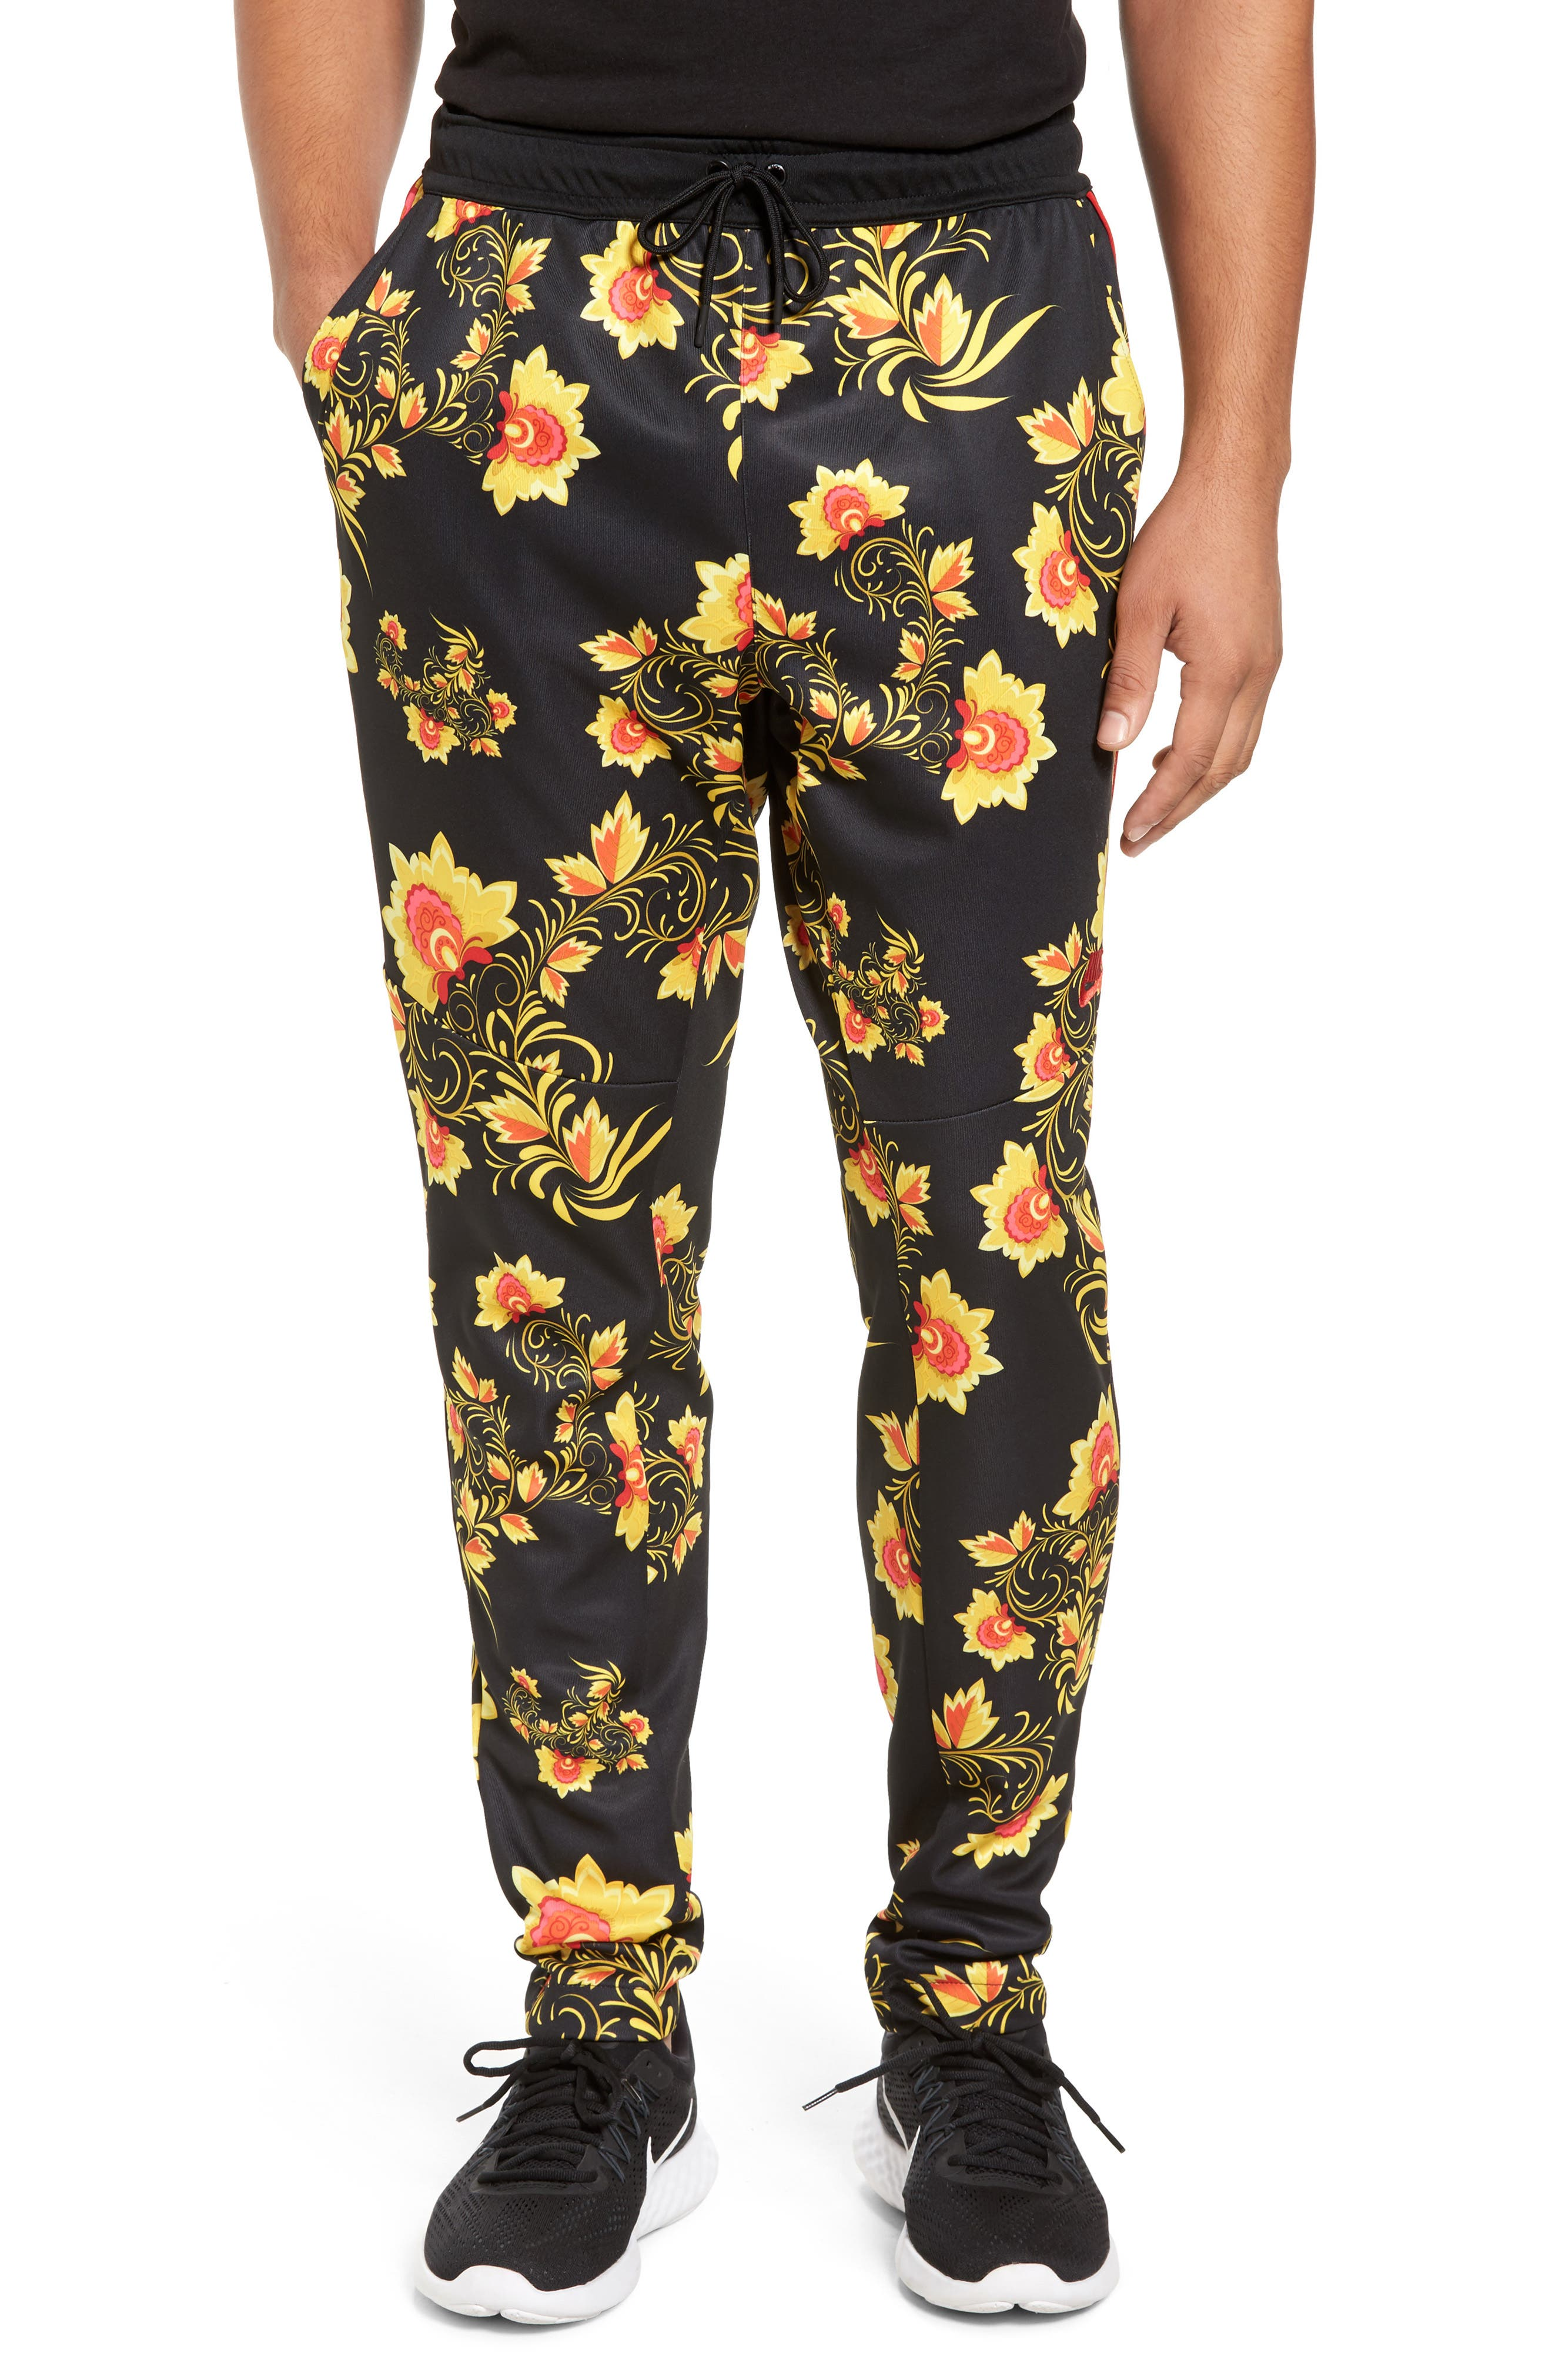 NSW Tribute Jogger Pants,                             Main thumbnail 1, color,                             Tour Yellow/ Black/ Red